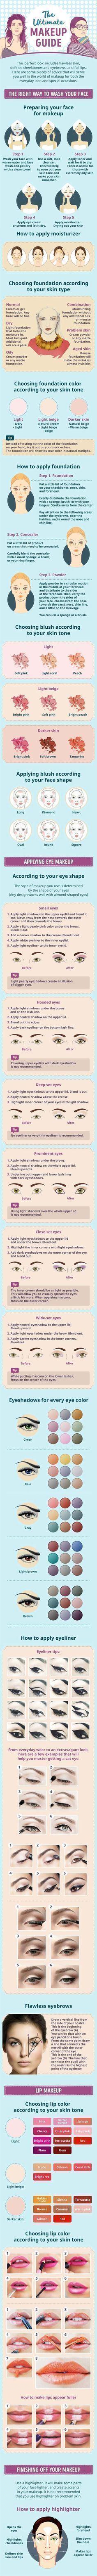 Best #makeup Tutorials for Teens -The Ultimate Makeup Guide You Can't Live Without - Easy Makeup Ideas for Beginners - Step by Step Tutorials for Foundation, Eye Shadow, Lipstick, Cheeks, Contour, Eyebrows and Eyes - Awesome Makeup Hacks and Tips for Simple DIY Beauty - Day and Evening Looks http://diyprojectsforteens.com/makeup-tutorials-teens #contouringmakeup